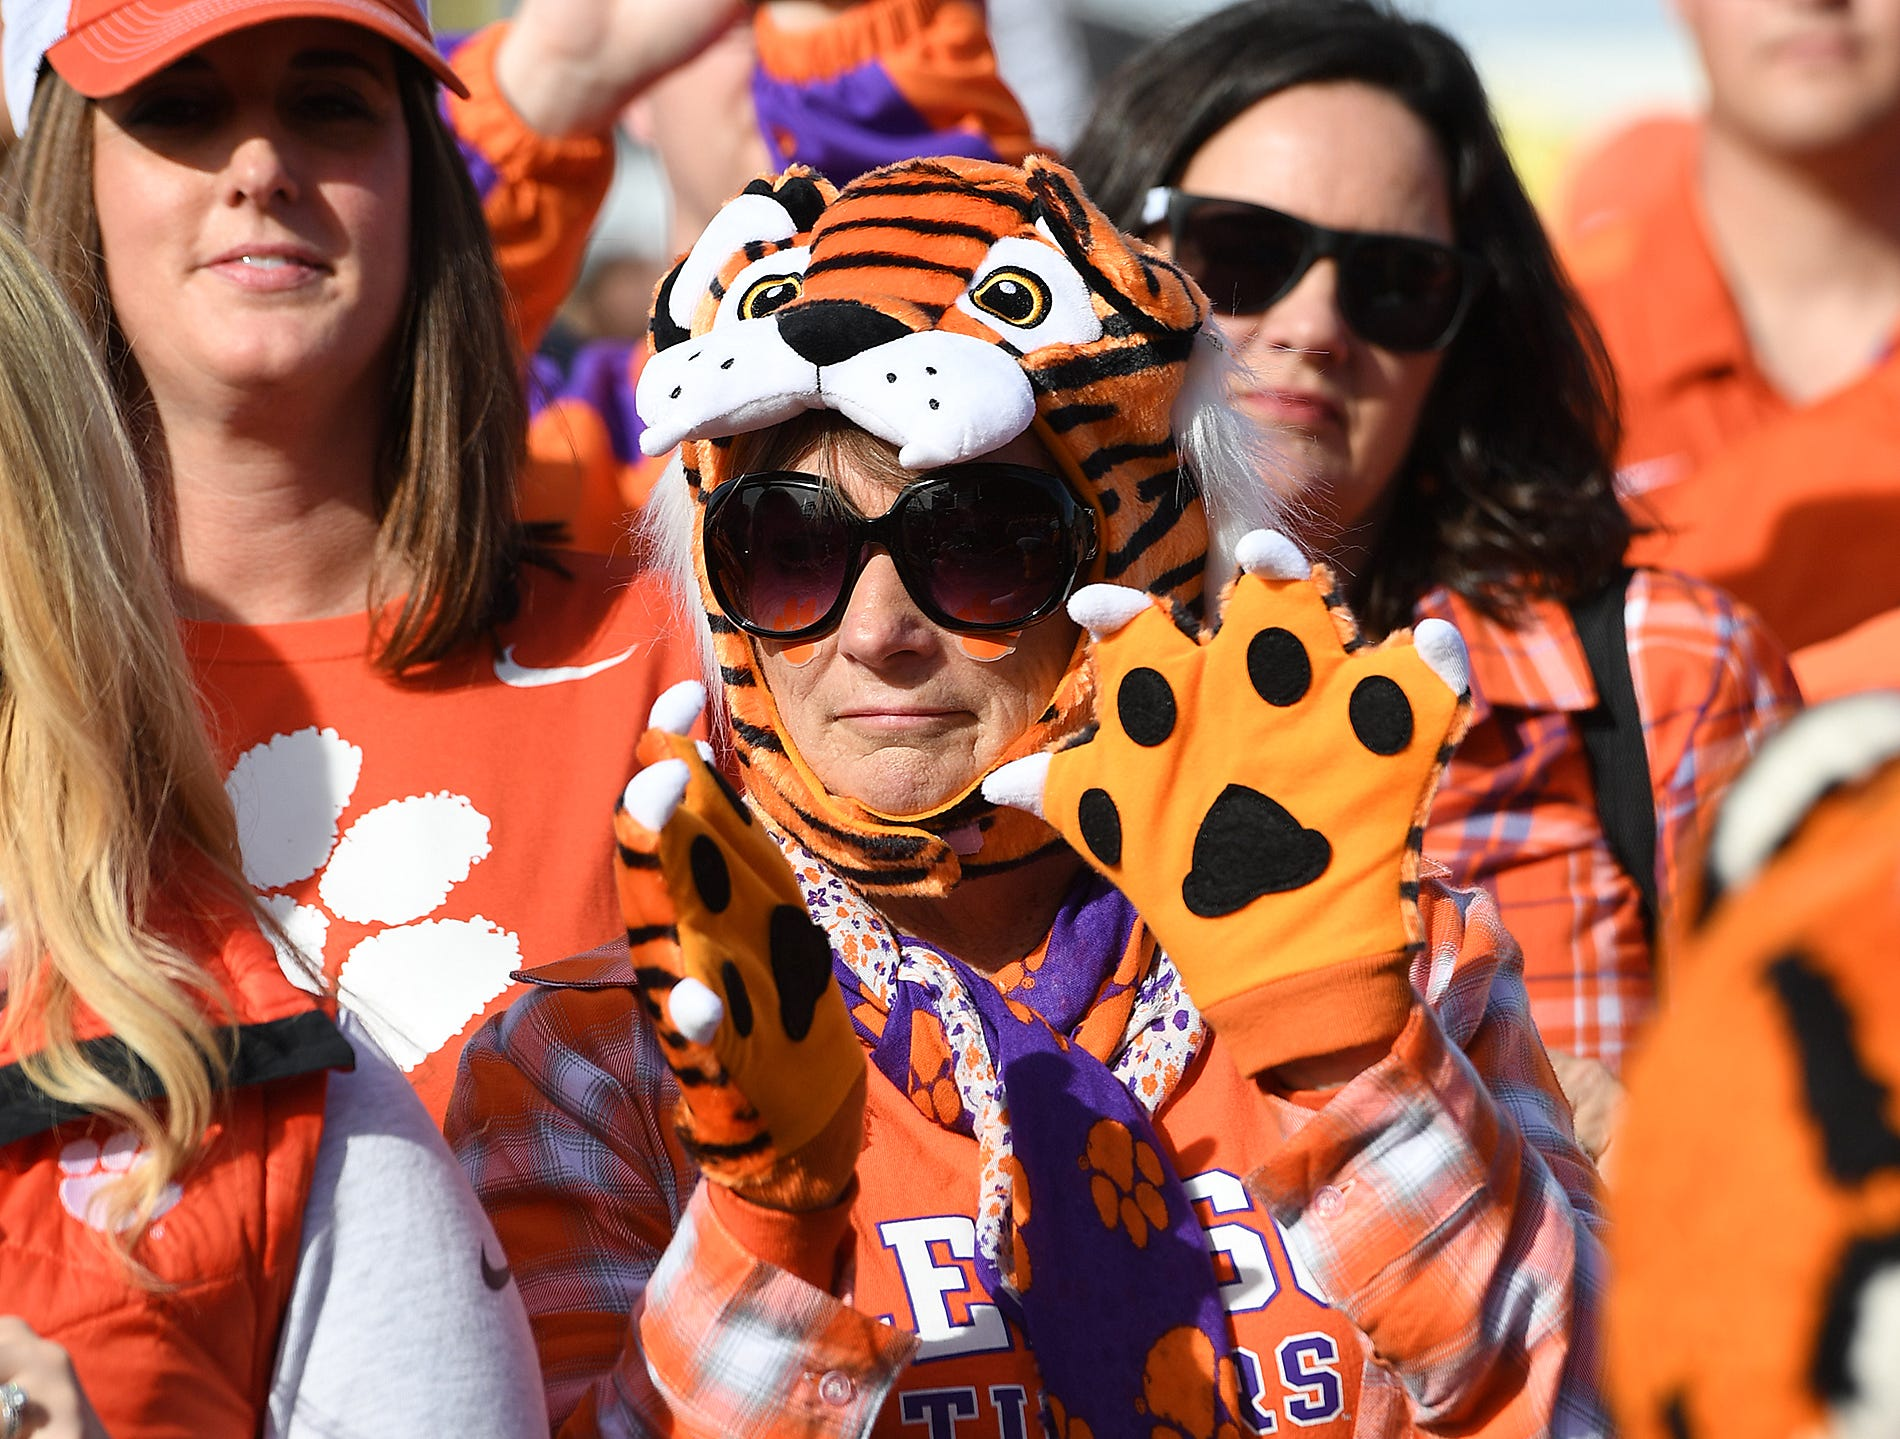 Duchess Sicay cheer for the Clemson band during the College Football Championship Playoff Tailgate outside Levi's Stadium in Santa Clara, CA Monday, January 7, 2019.